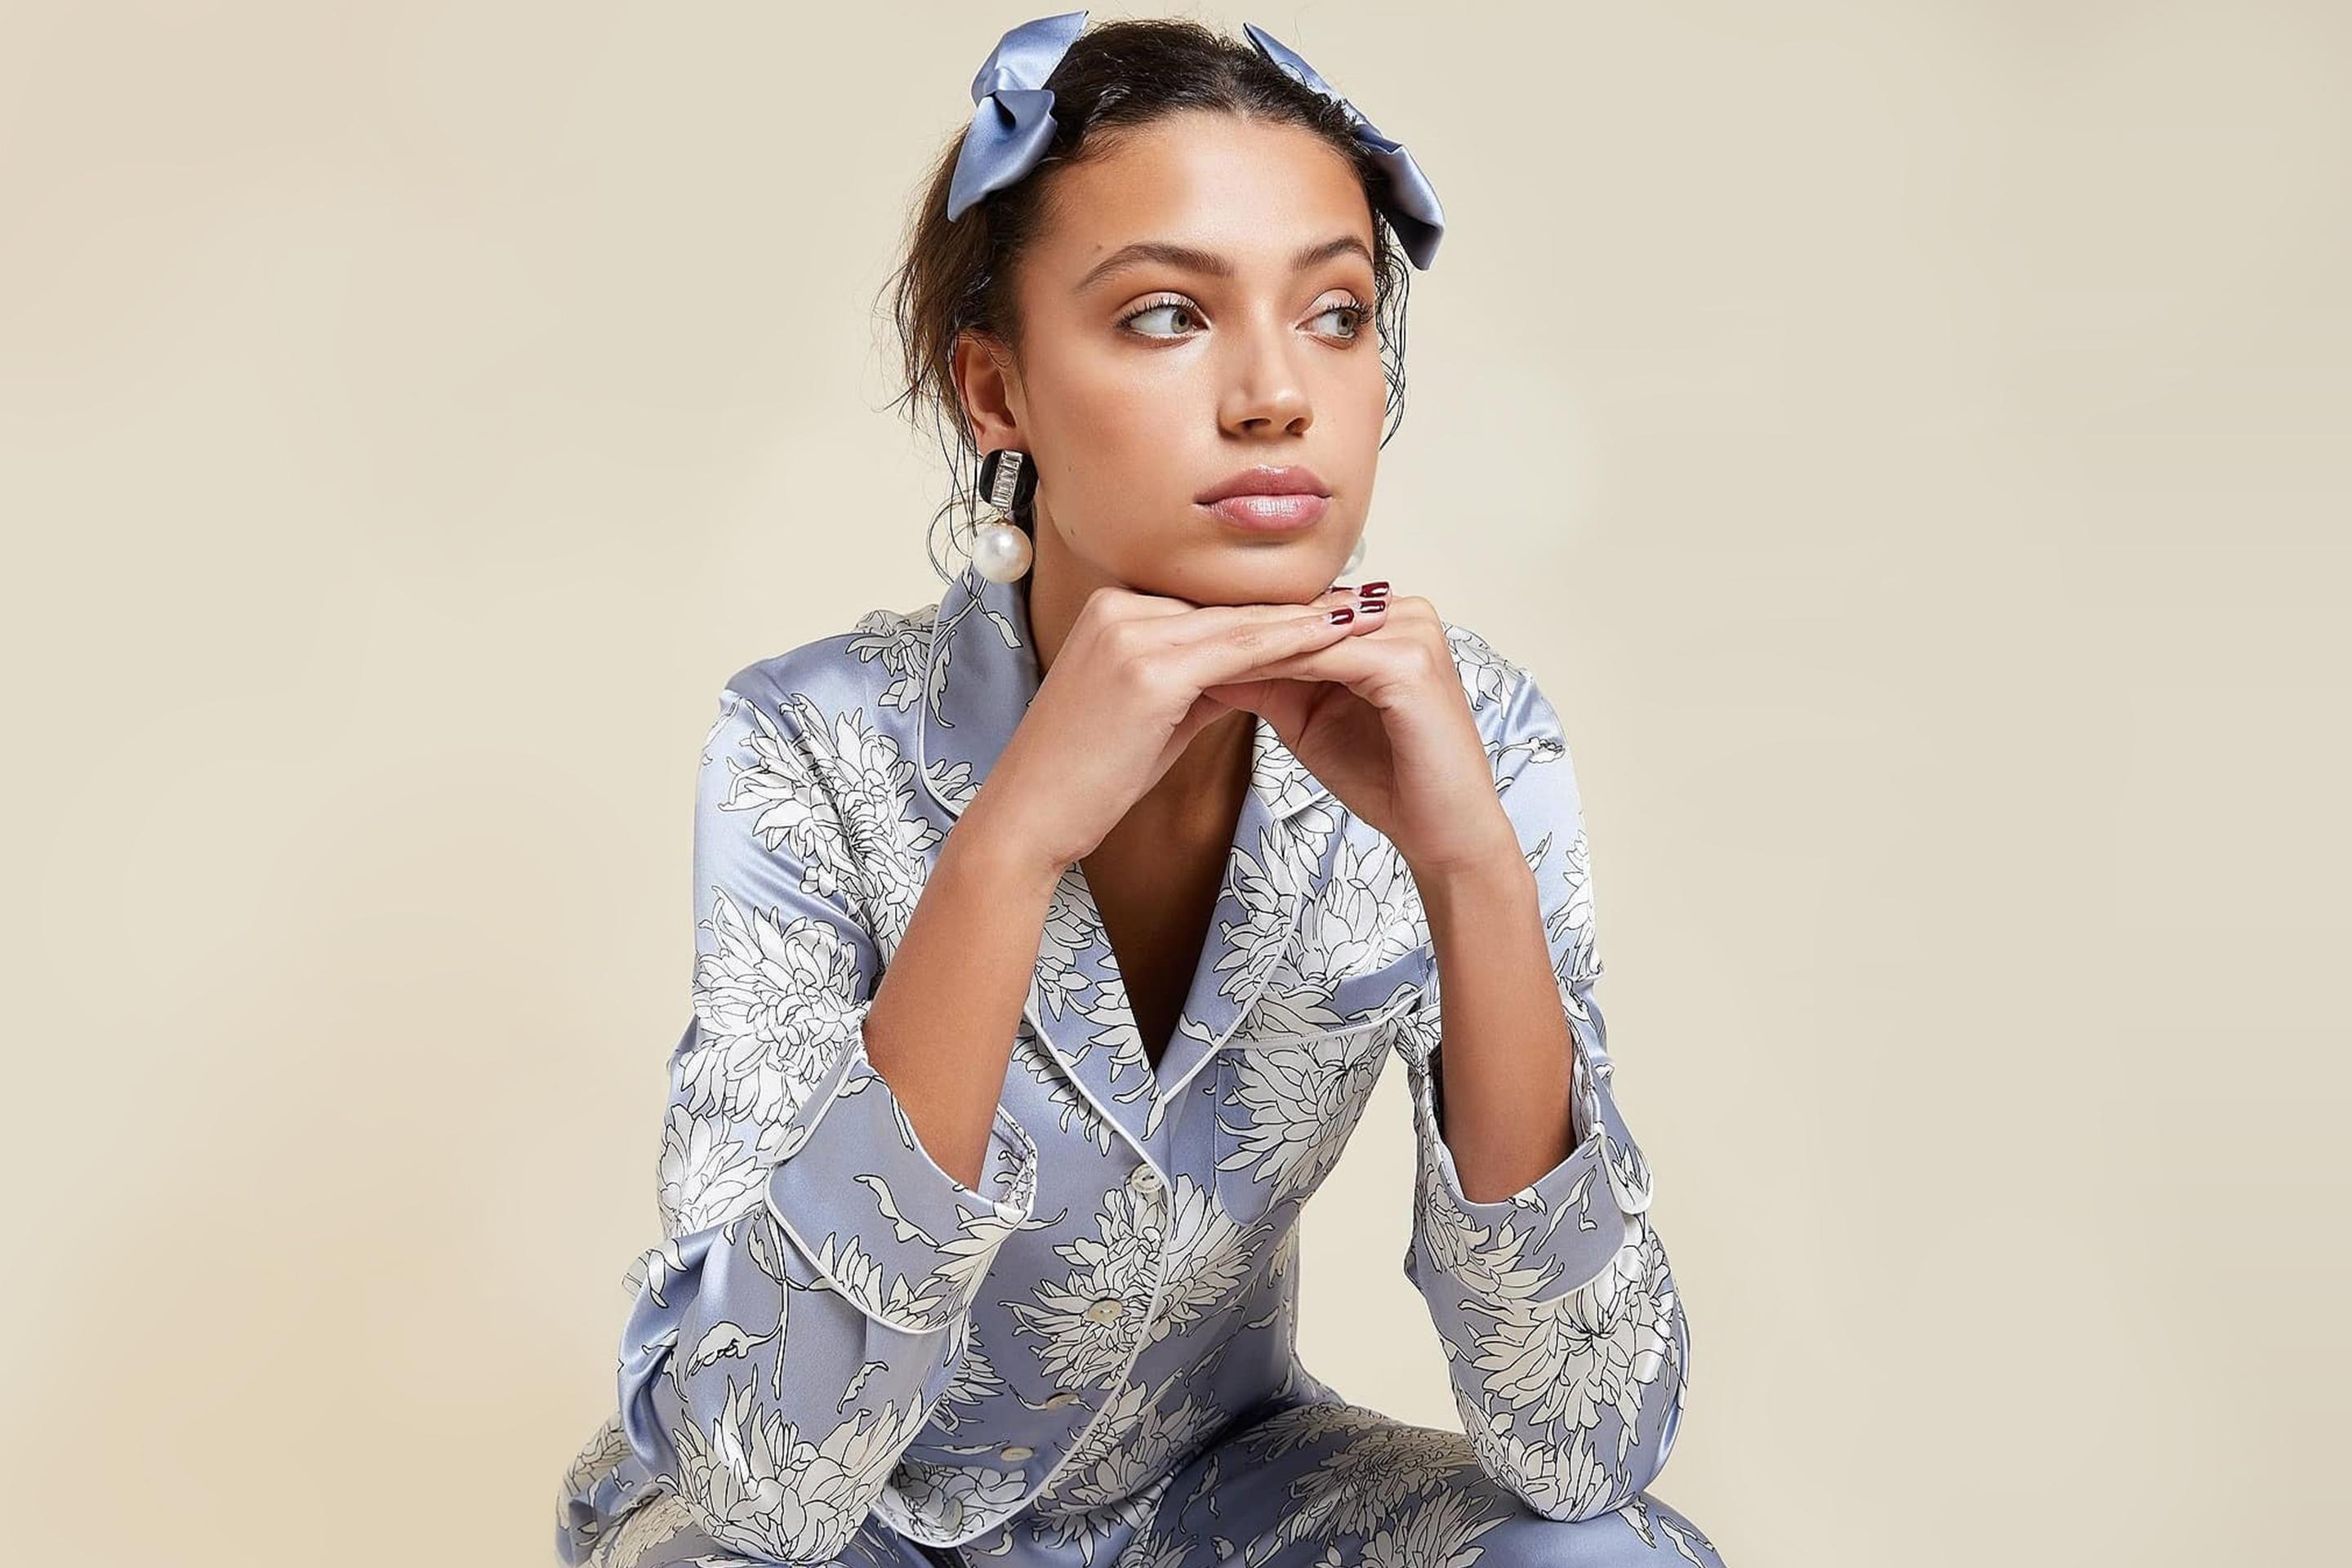 olivia von halle sleepwear edit featured image